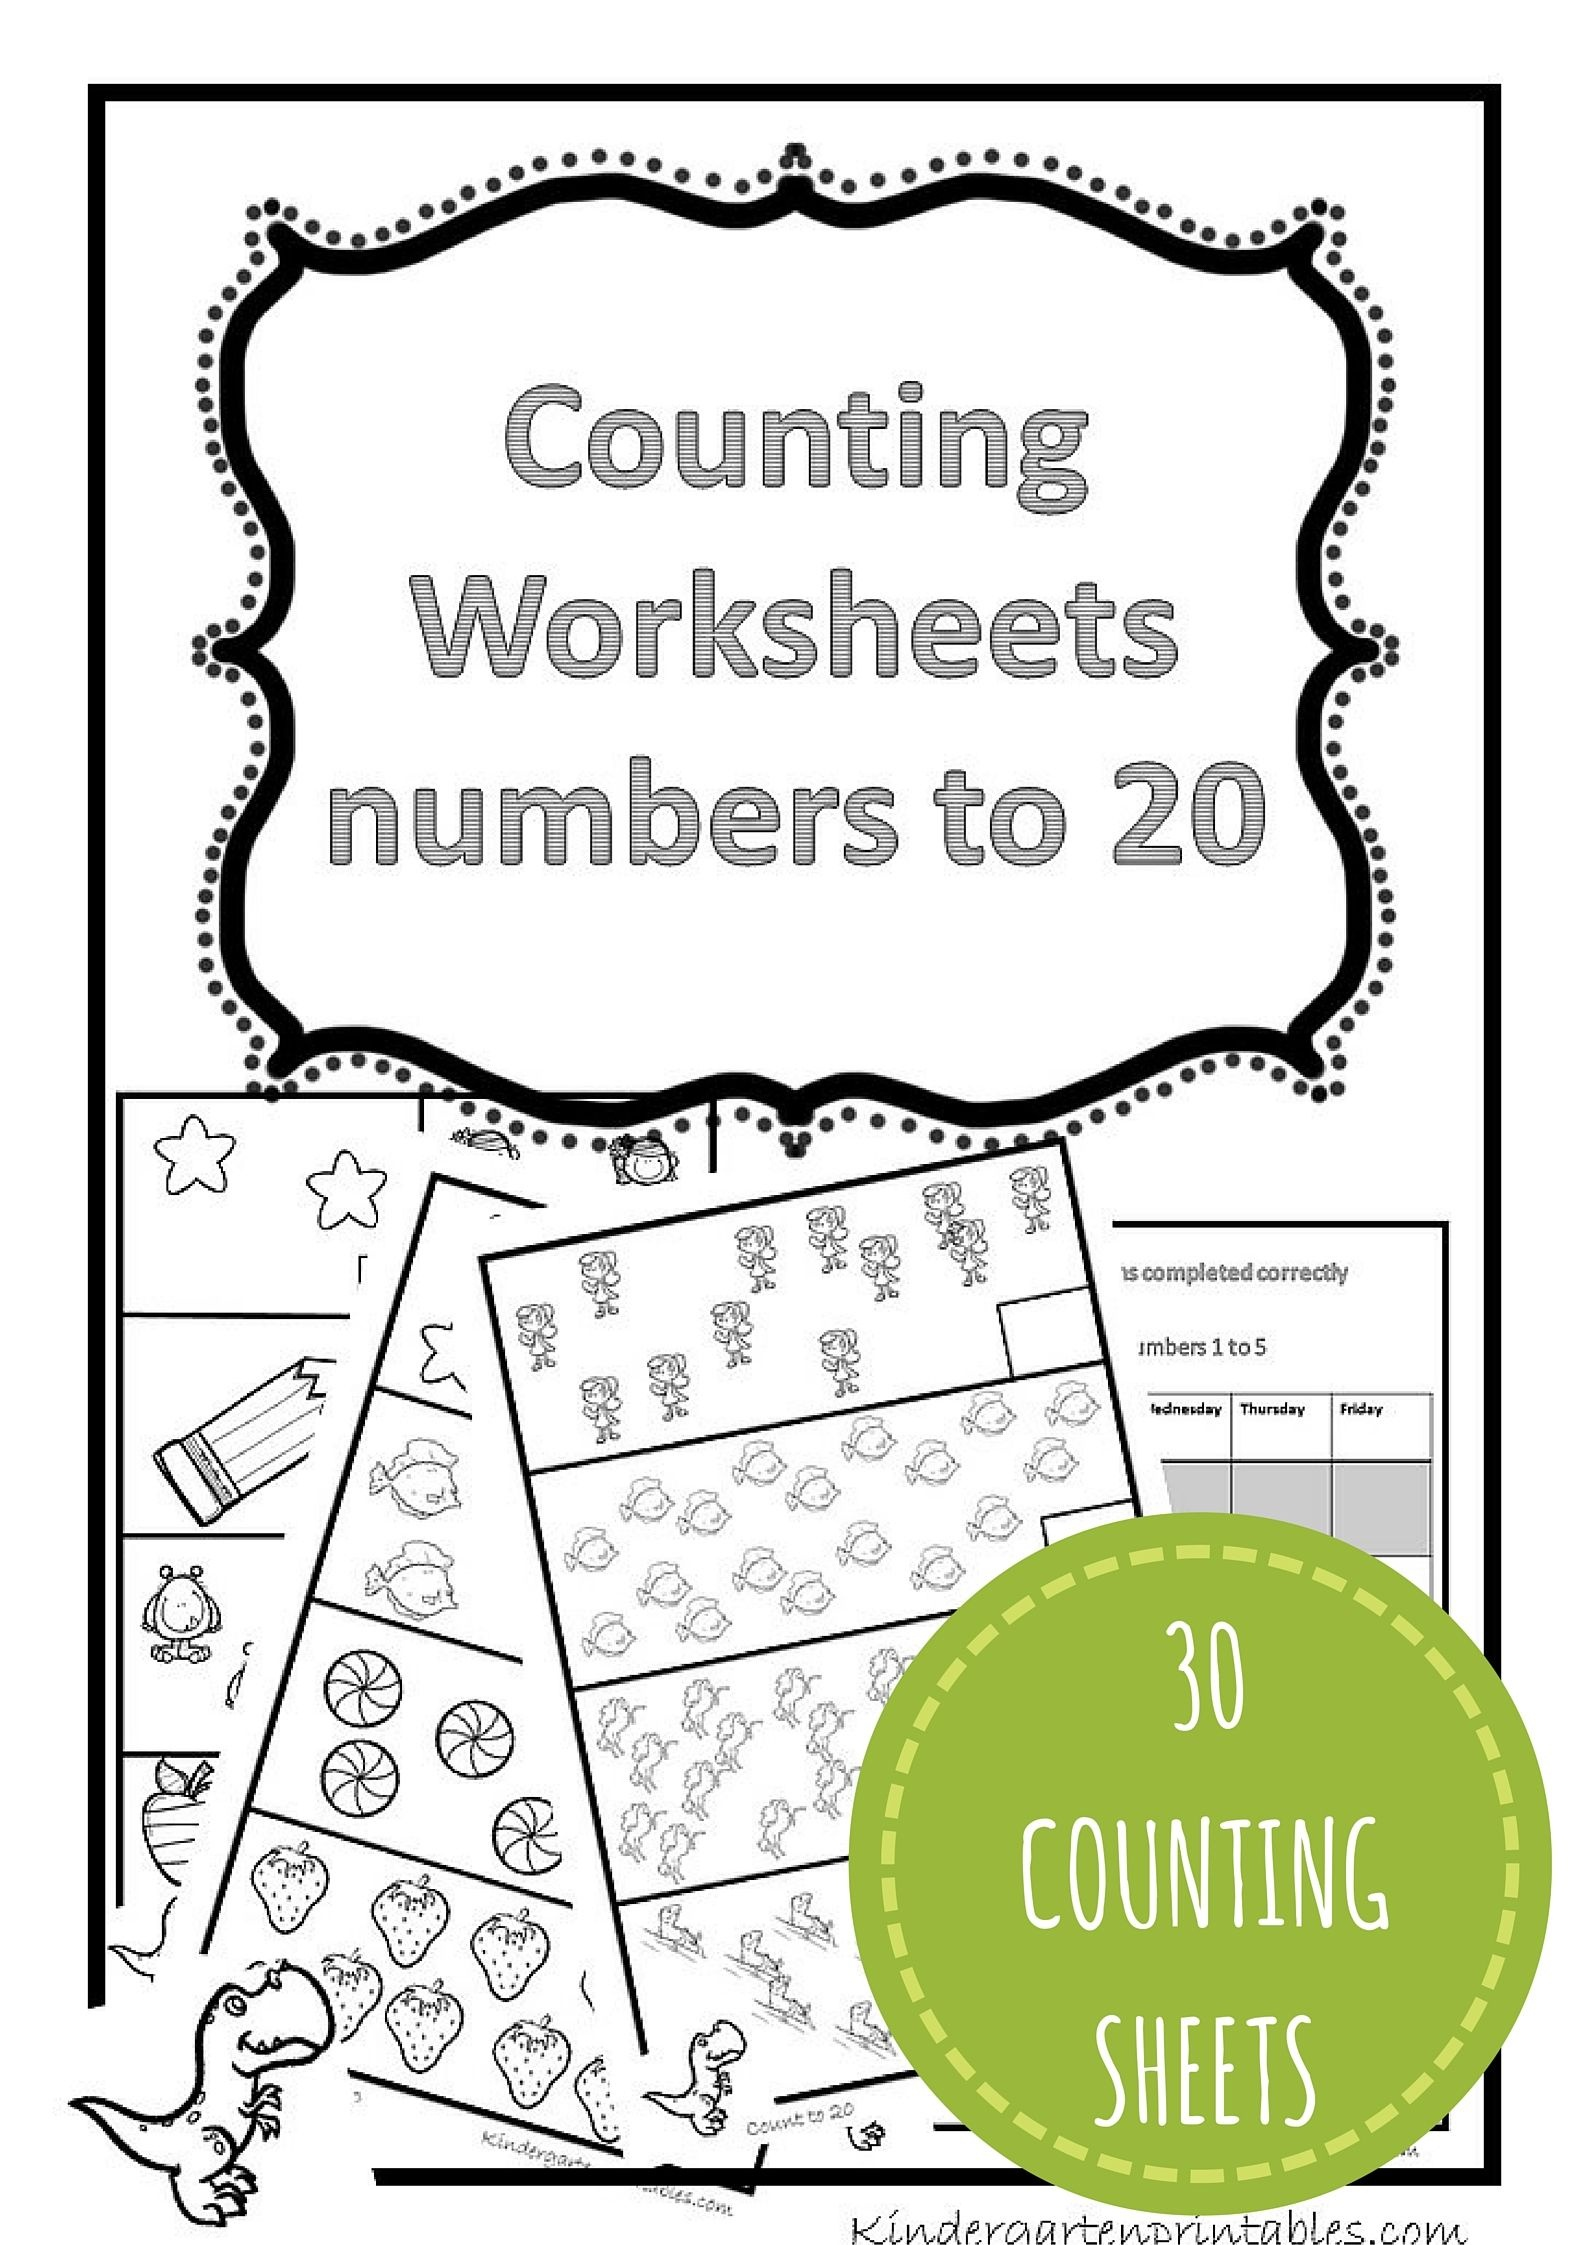 Counting Worksheets 1-20 Free Printable Workbook Counting Worksheets - Free Printable Counting Worksheets 1 20